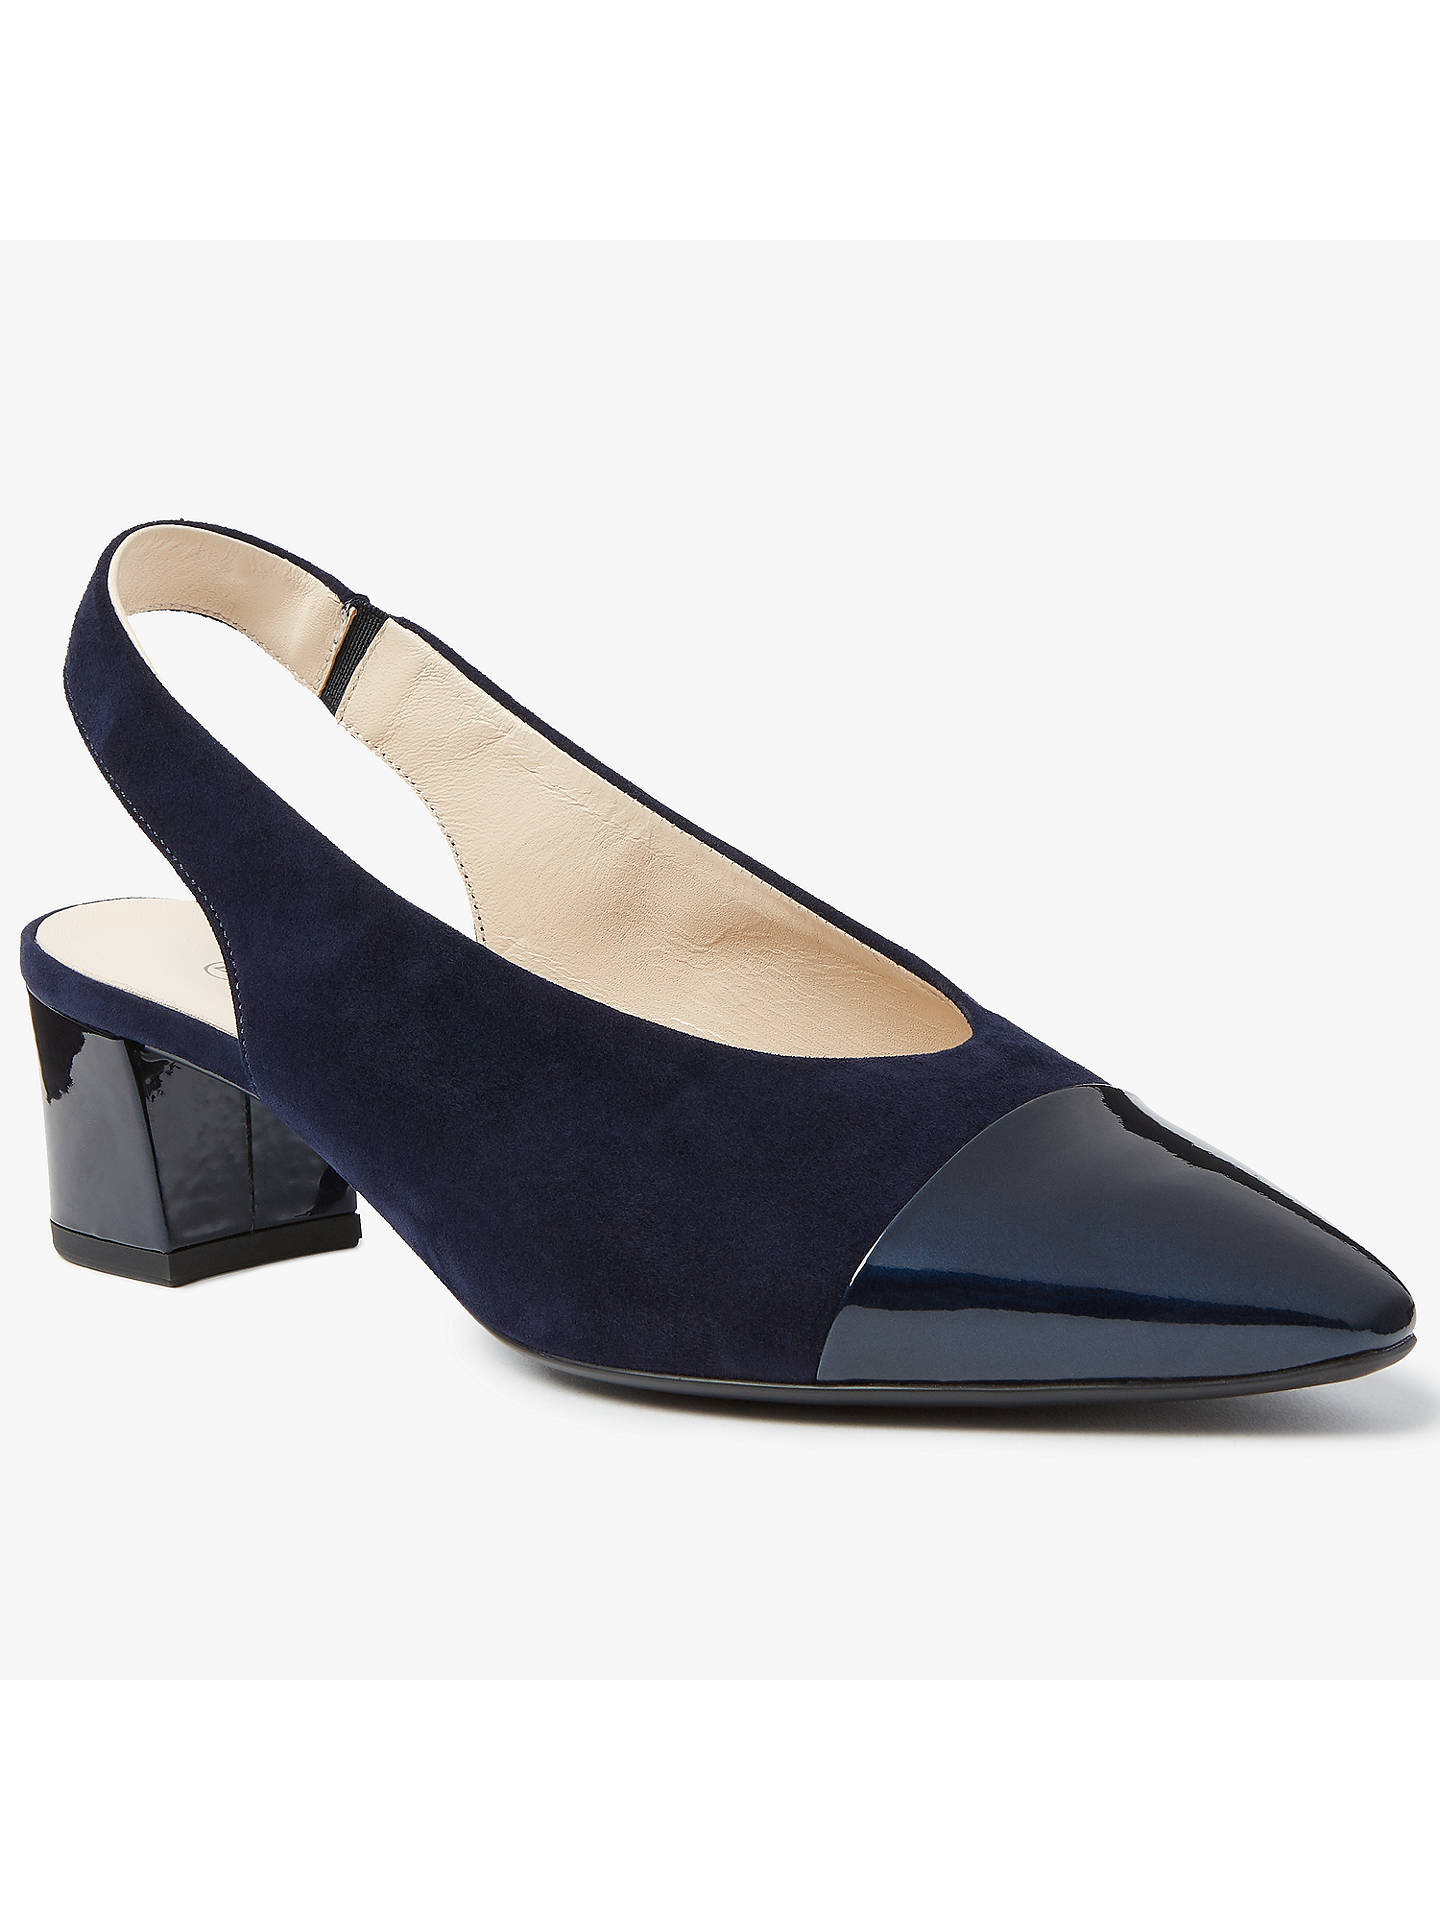 Peter Kaiser Sofie | Mid Heel Sling Back Shoes | Navy Suede | PK